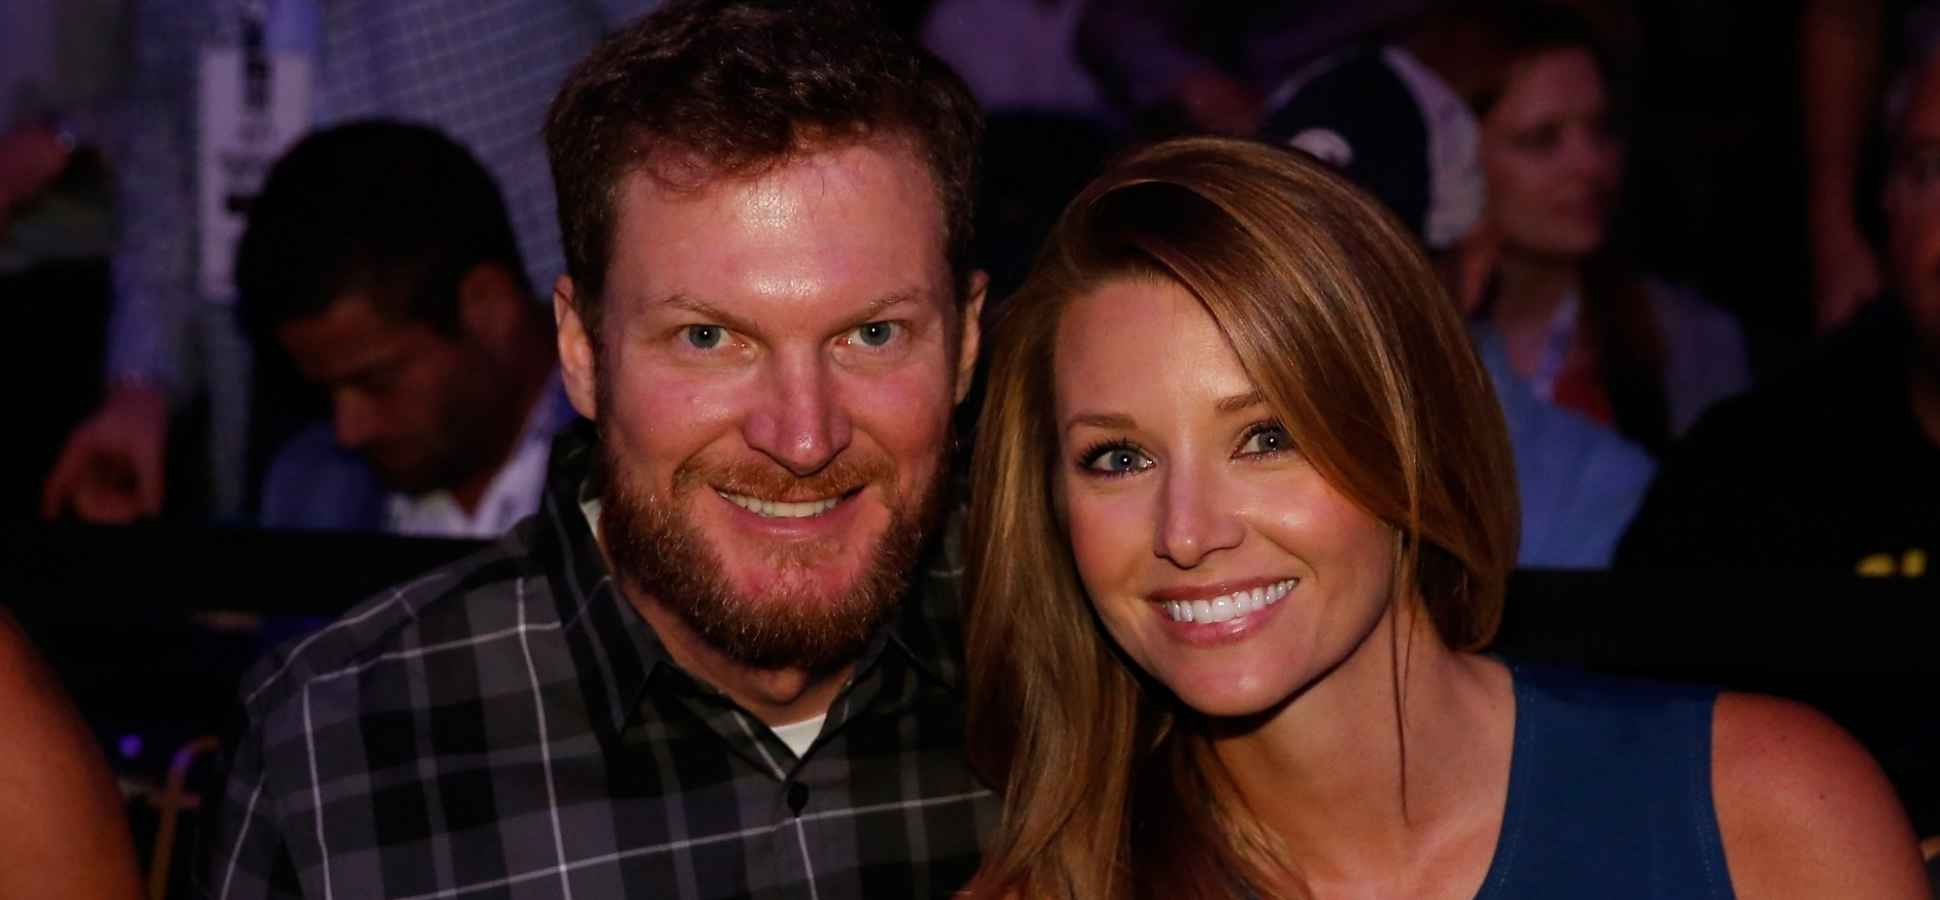 Dale Earnhardt Jr. Proves What Science Says: Marry the Right Person, Be Much More Successful